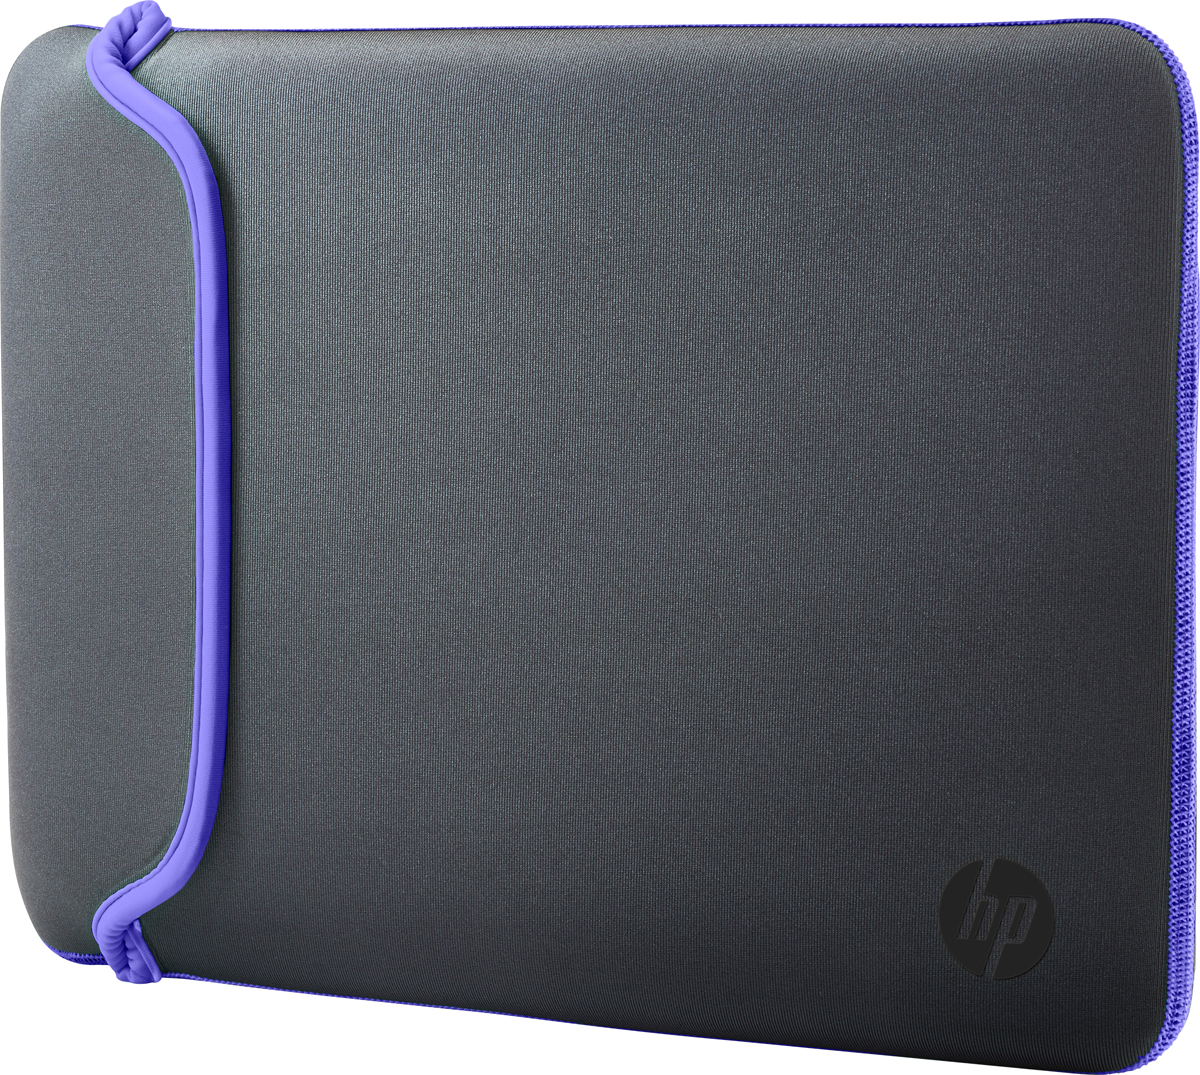 HP Neoprene Sleeve чехол для ноутбука 15.6, Grey Purple (V5C32AA)1000391212